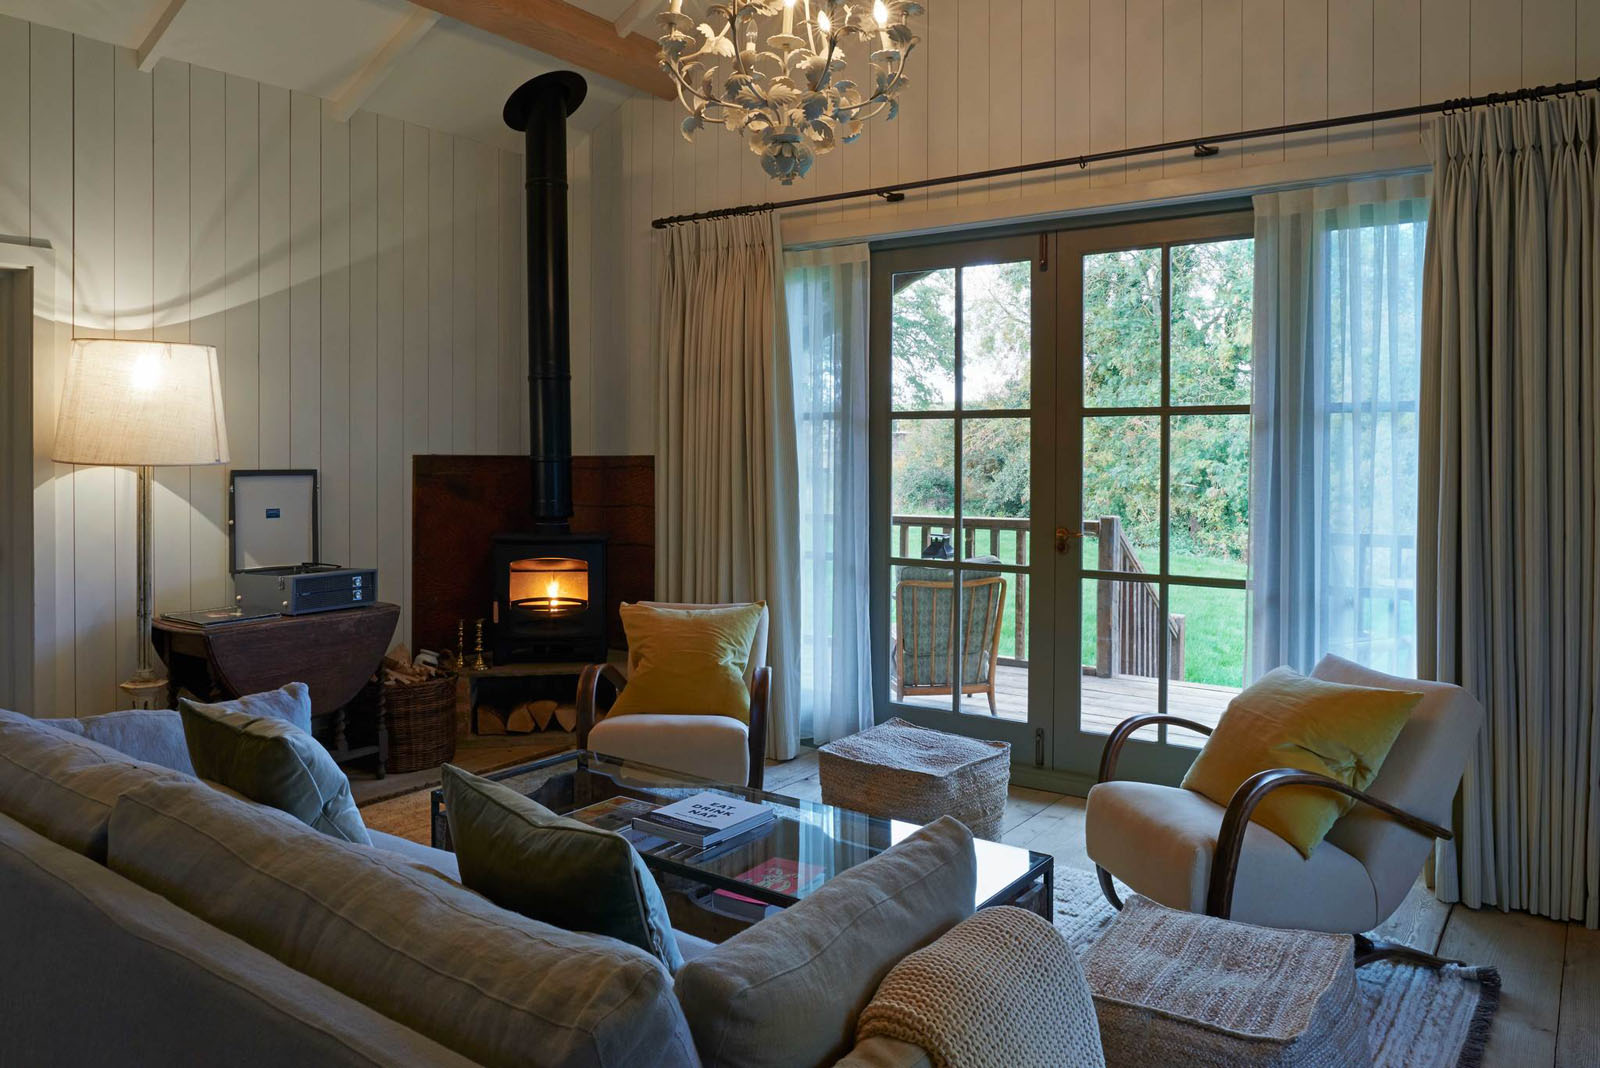 English Farmhouse Interiors Soho Farmhouse Oxfordshire 14 Idesignarch Interior